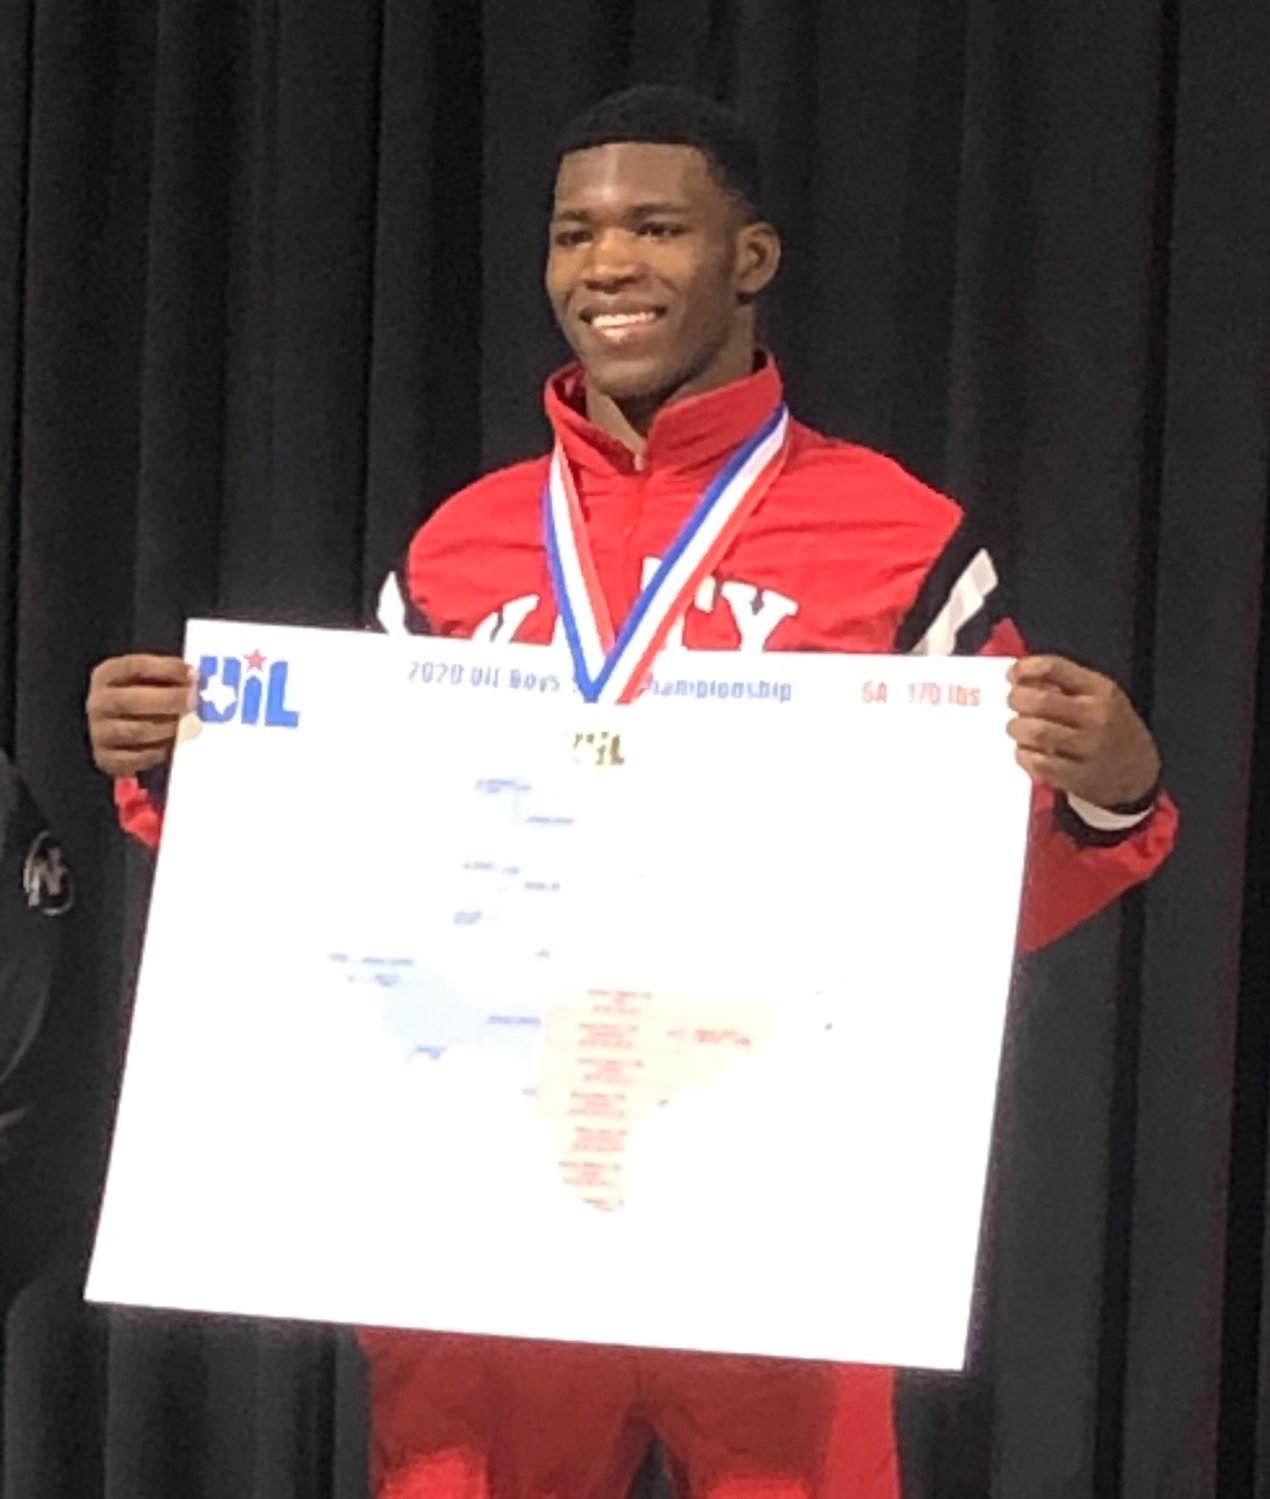 Katy High senior Kishawn Higgins repeated as champion in his 170-pound class at the UIL Class 6A state tournament on Feb. 22 and closed his brilliant senior season with a 54-1 overall record.